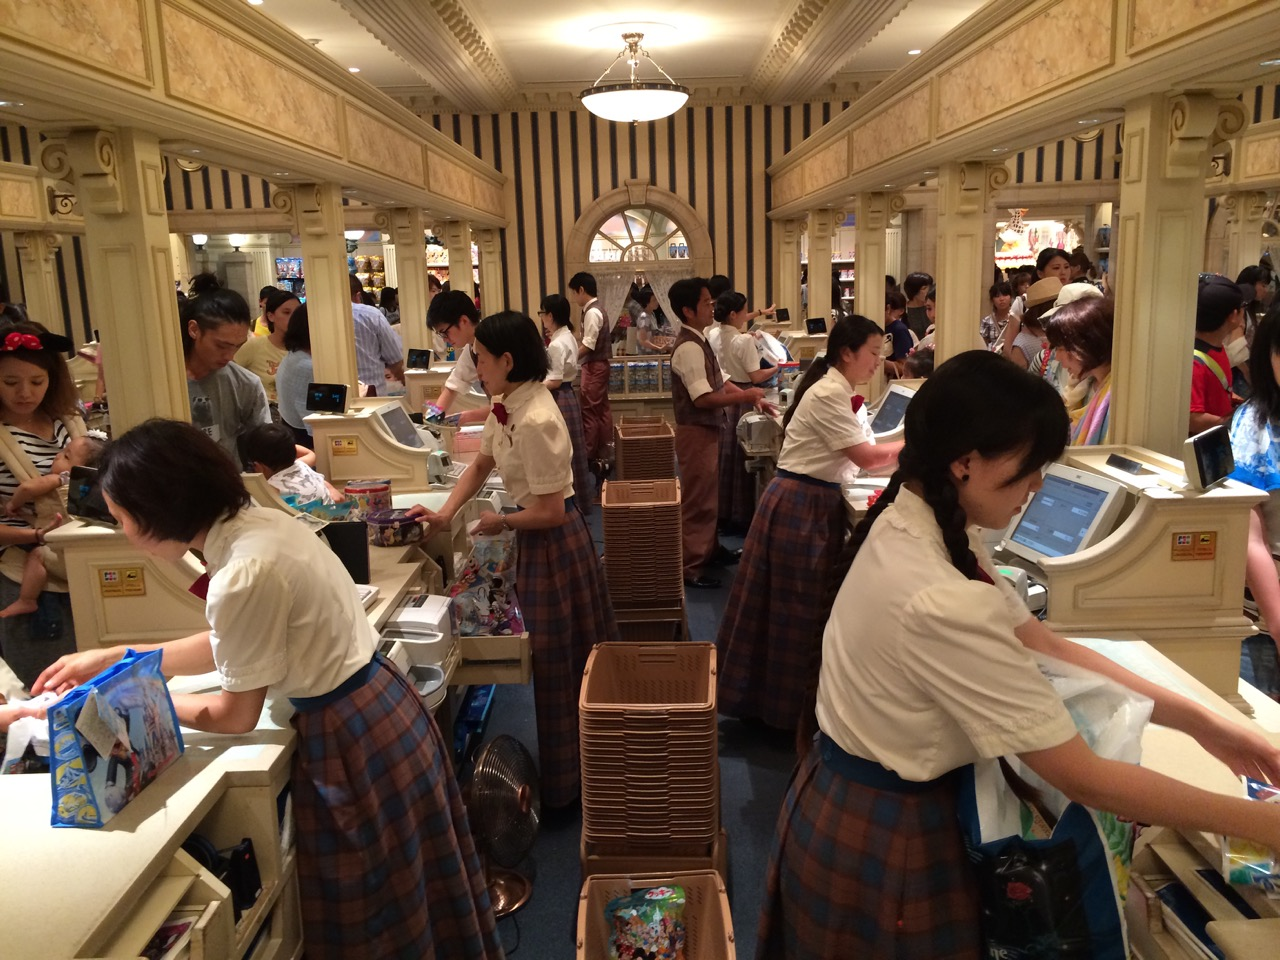 The same checkout concept in Tokyo Disneyland, also with a banking-style theme. Photo by J. Jeff Kober.